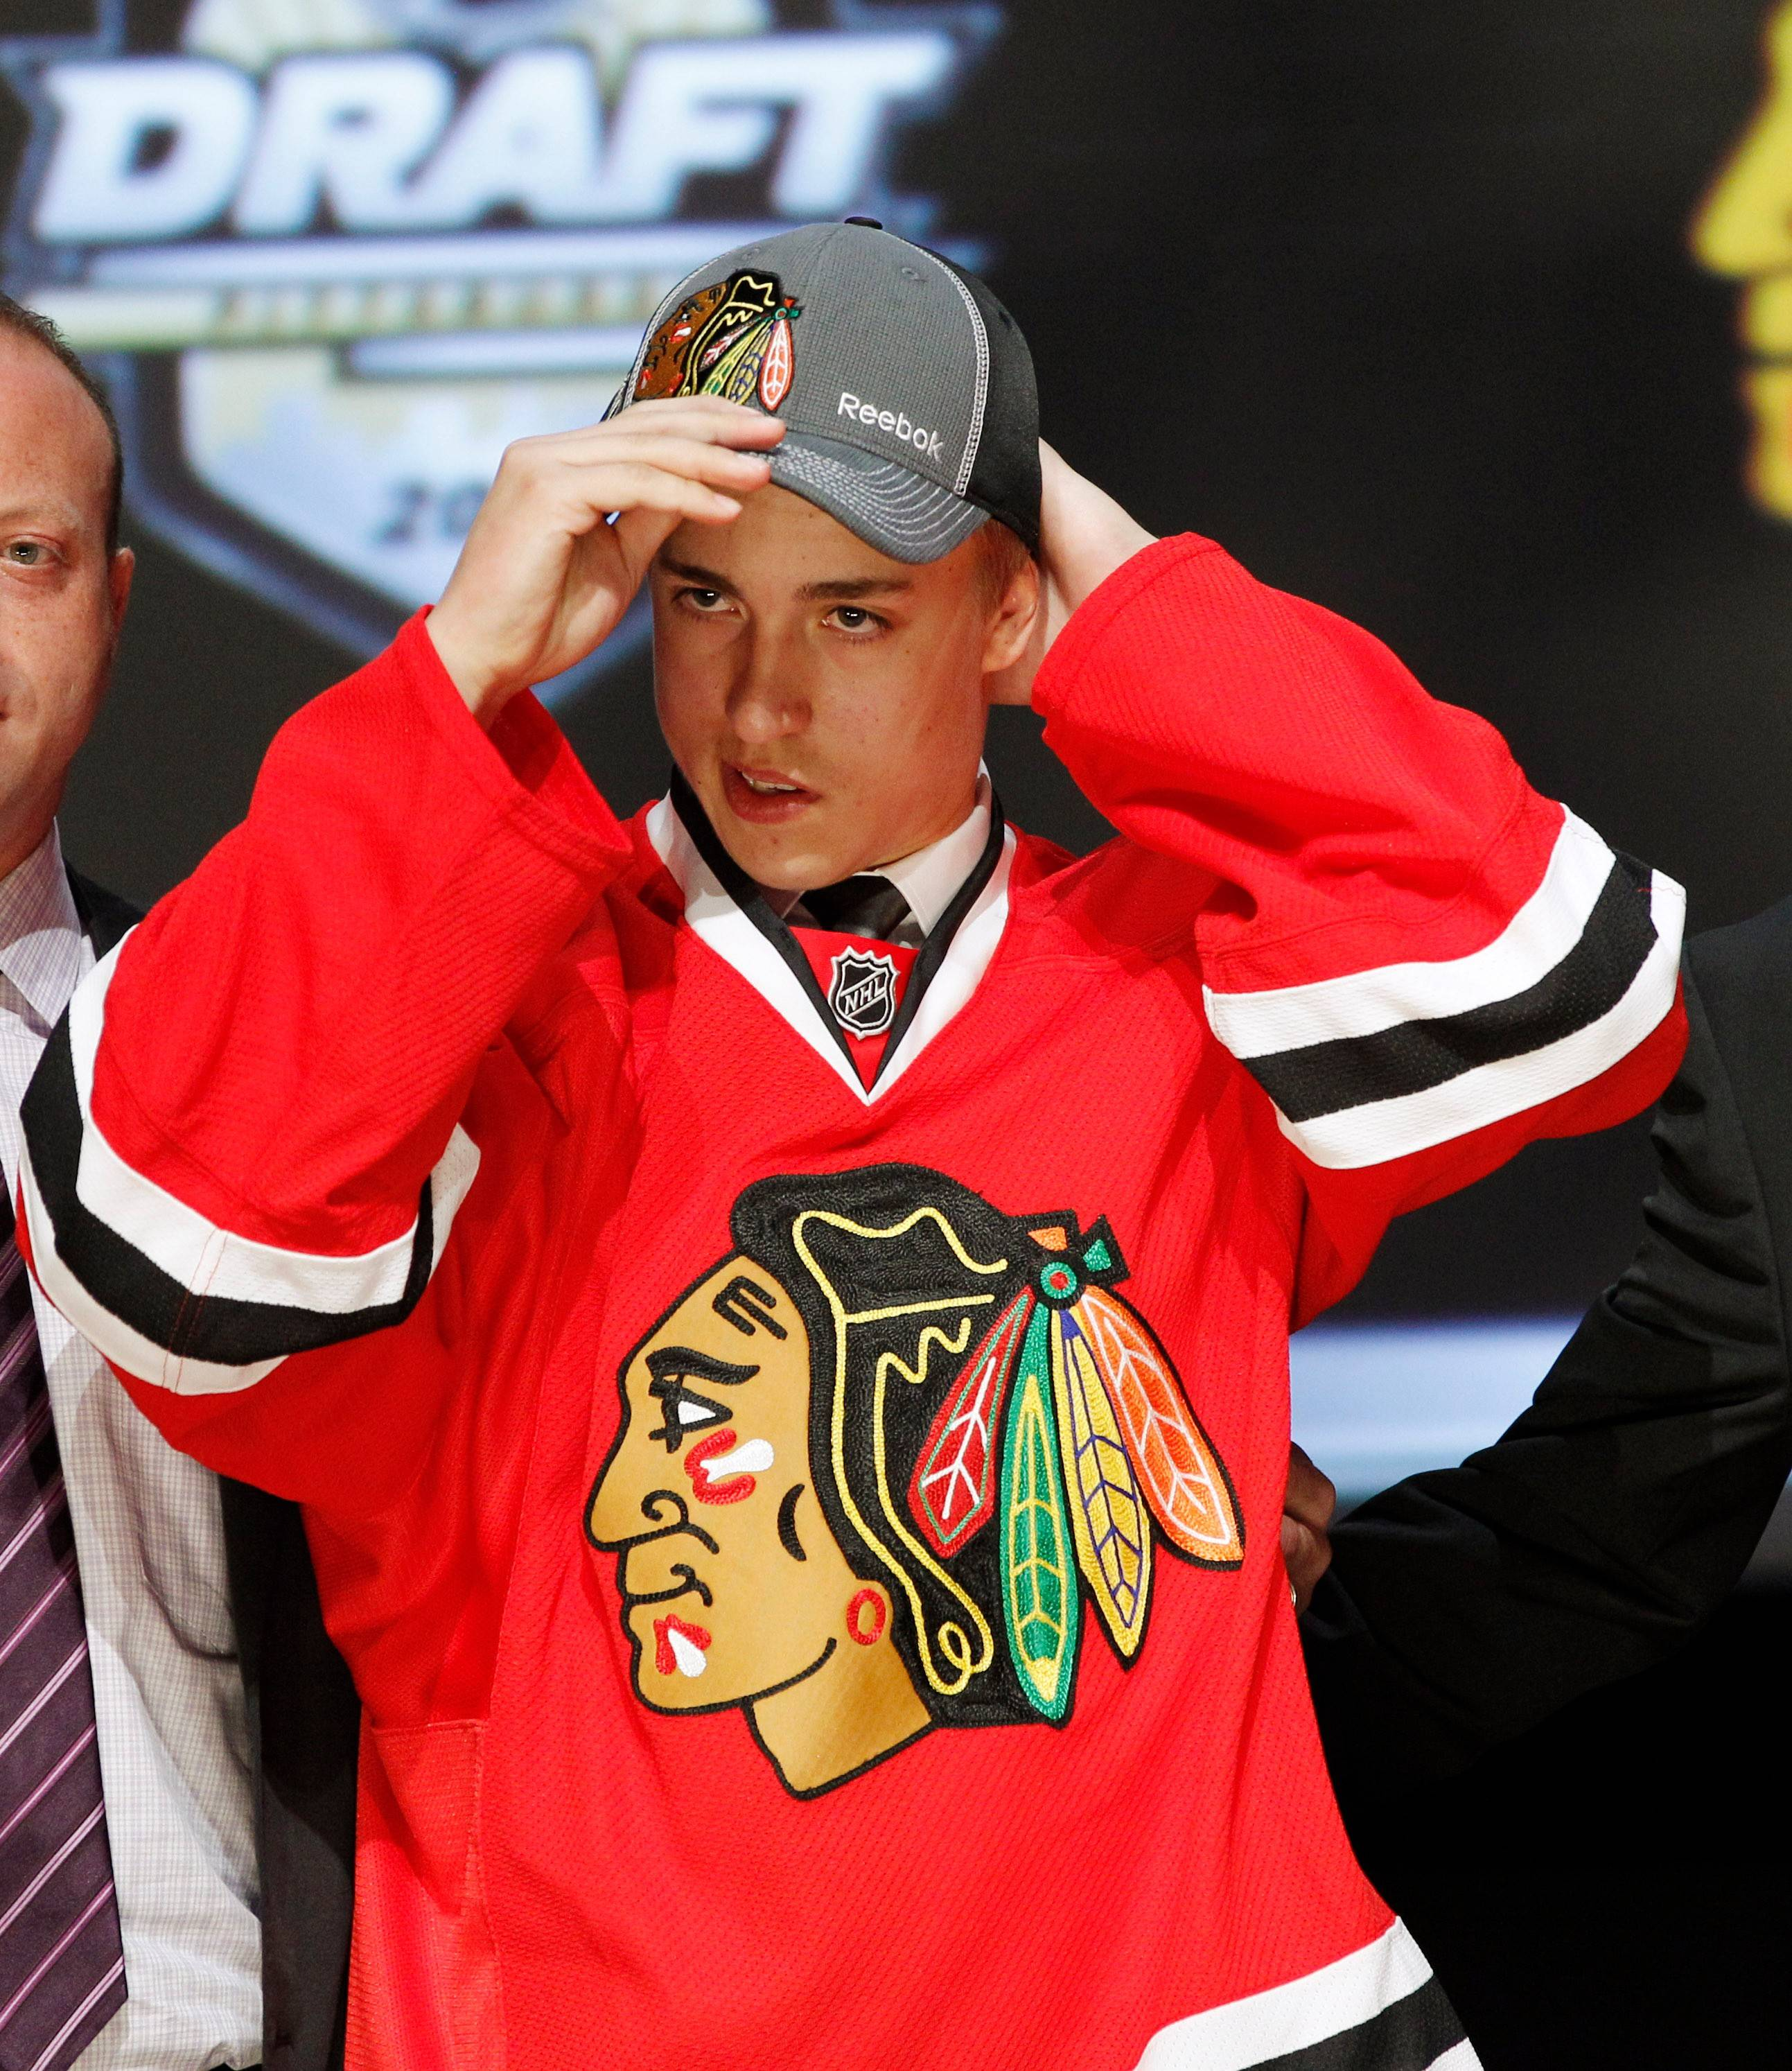 Teuvo Teravainen, a winger from Finland, pulls on a Blackhawks cap after being chosen 18th overall in the first round of the NHL draft in 2012.